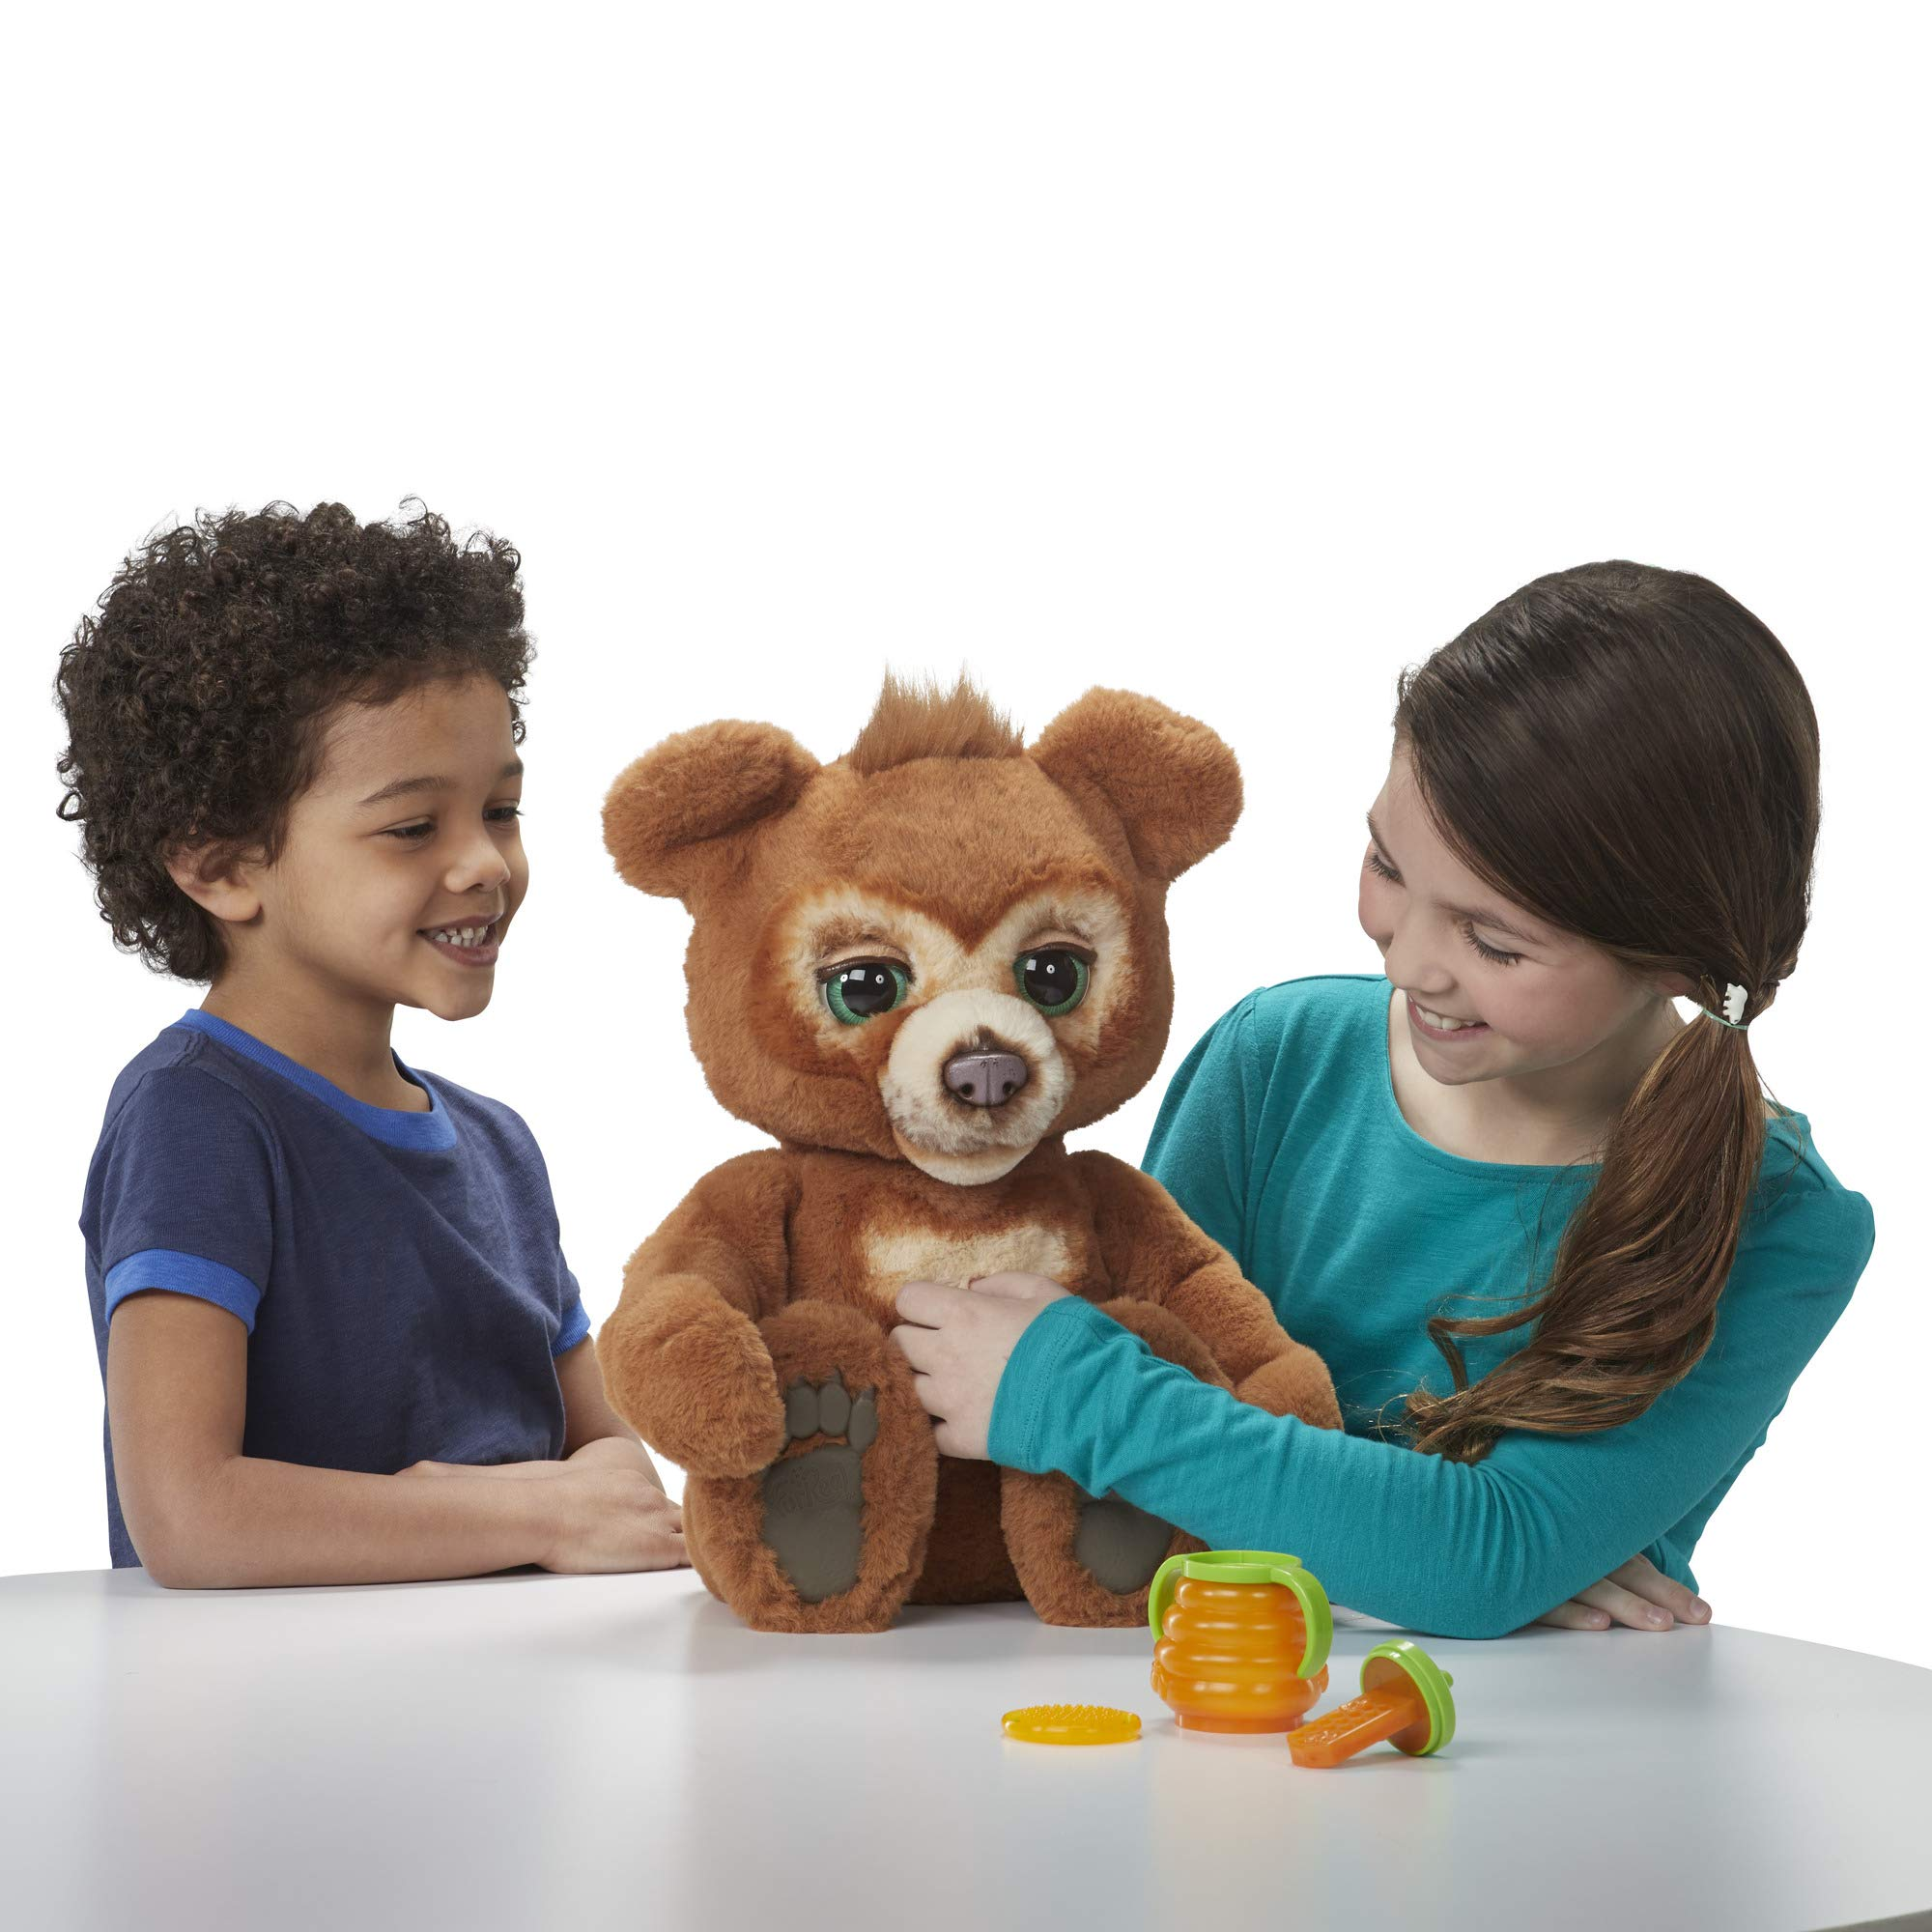 FurReal Cubby, The Curious Bear Interactive Plush Toy, Ages 4 and Up by FurReal (Image #10)